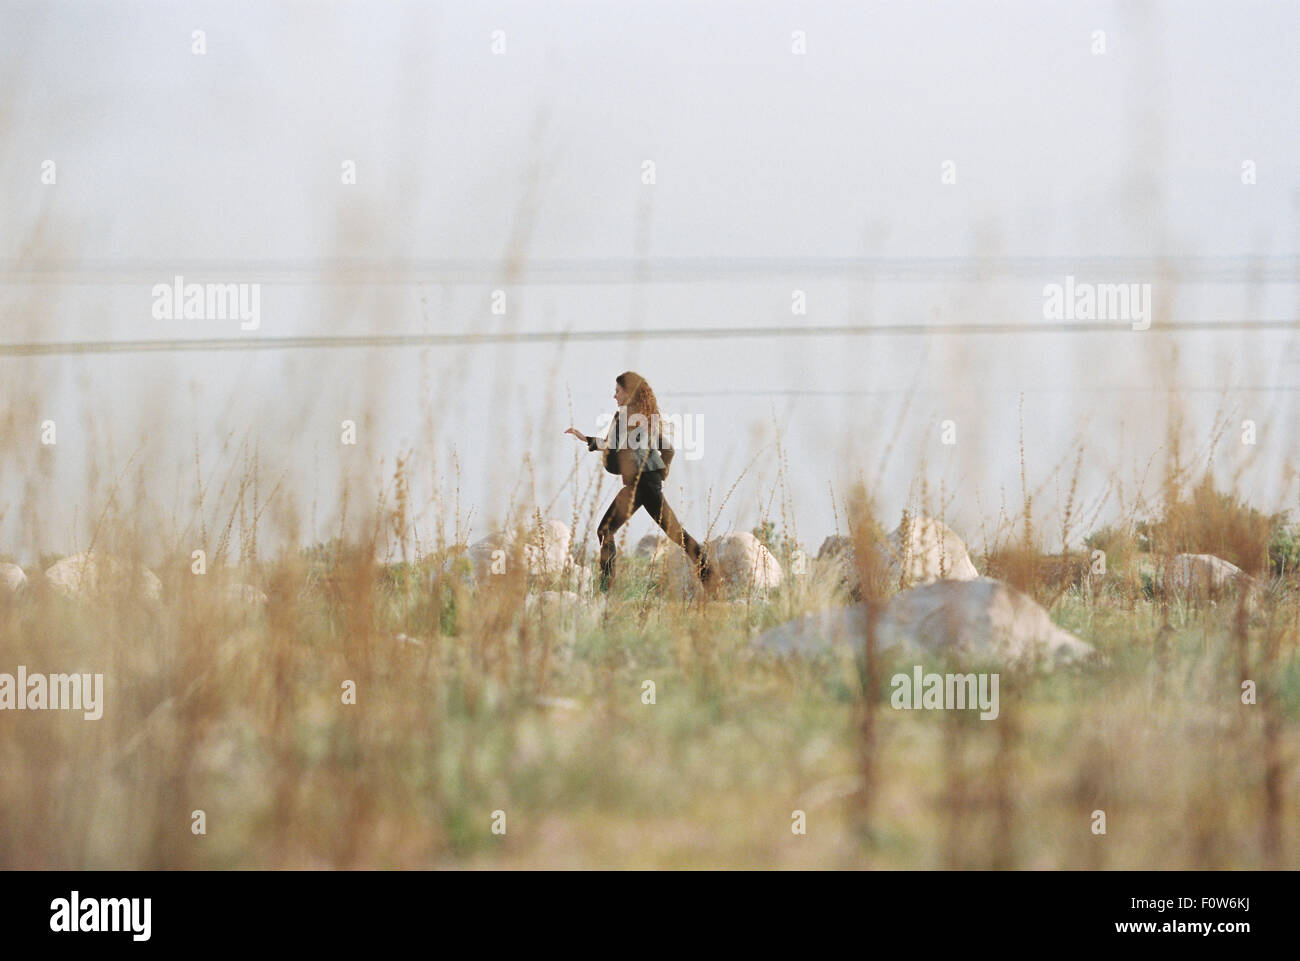 A woman striding across the grass past rocks along the shore of a lake. - Stock Image